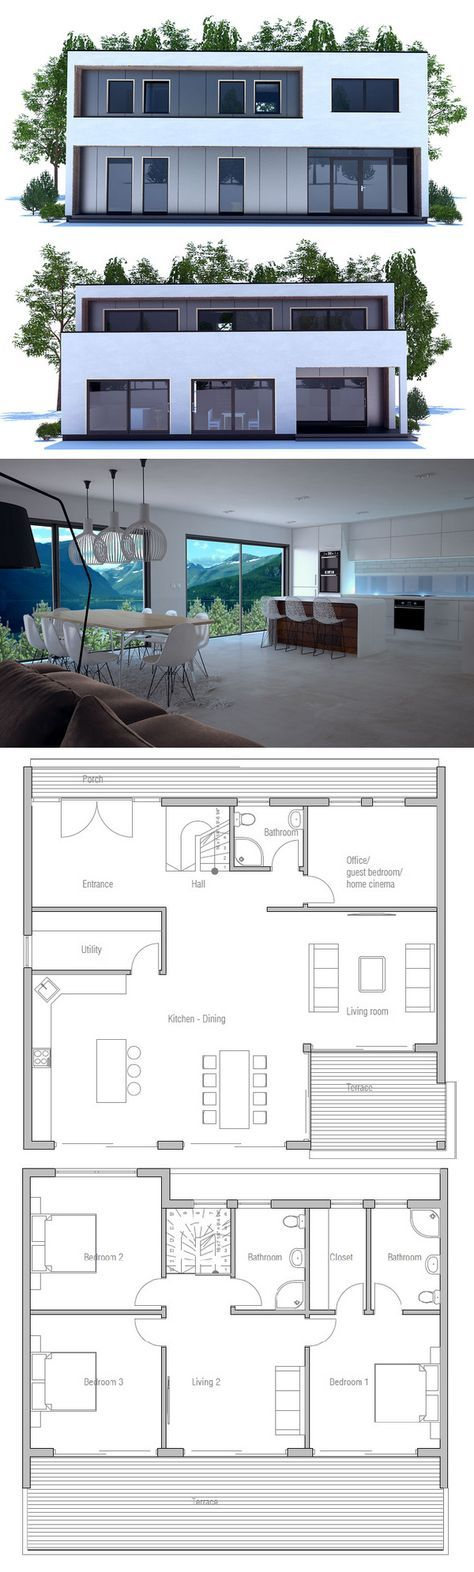 11 best Plan images on Pinterest Architecture, Bamboo and Beautiful - plan de maison simple